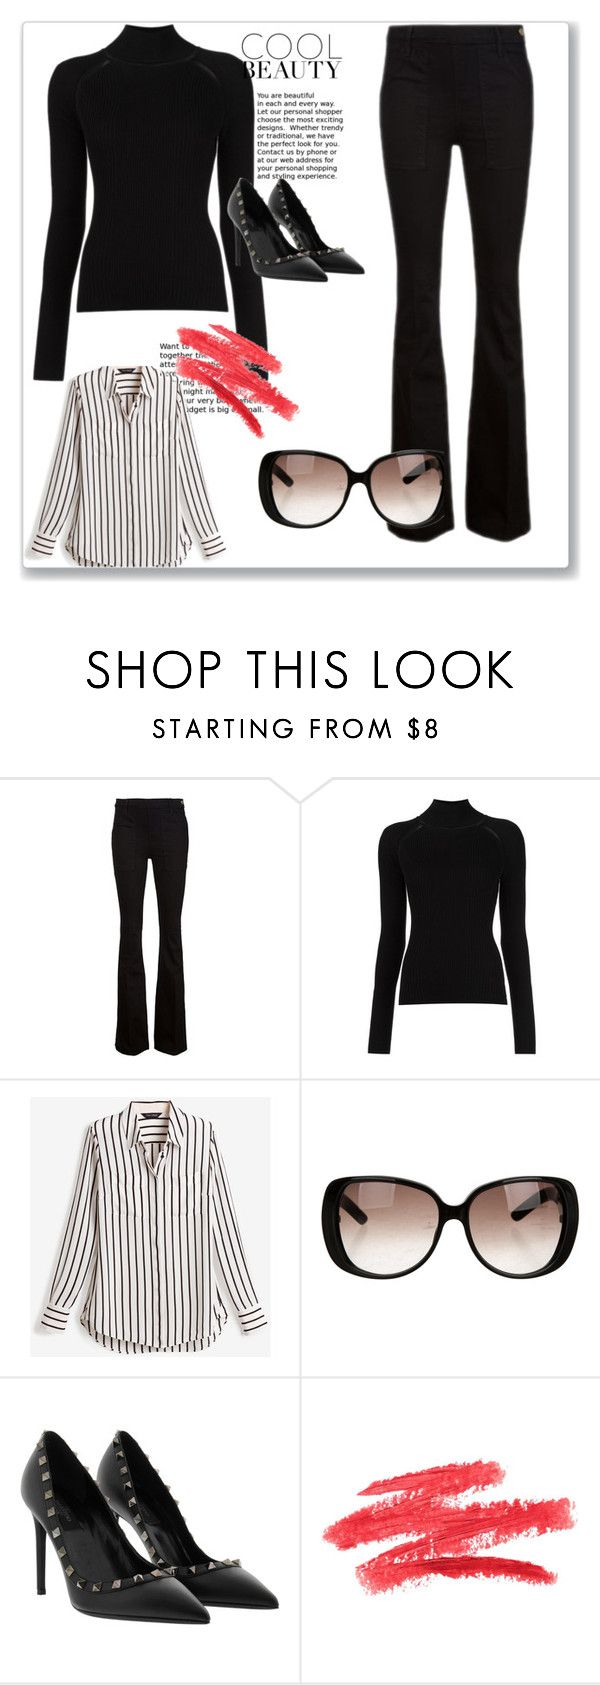 """Черная водолазка 7"" by izolda06 on Polyvore featuring мода, Frame Denim, Misha Nonoo, White House Black Market и Gucci"